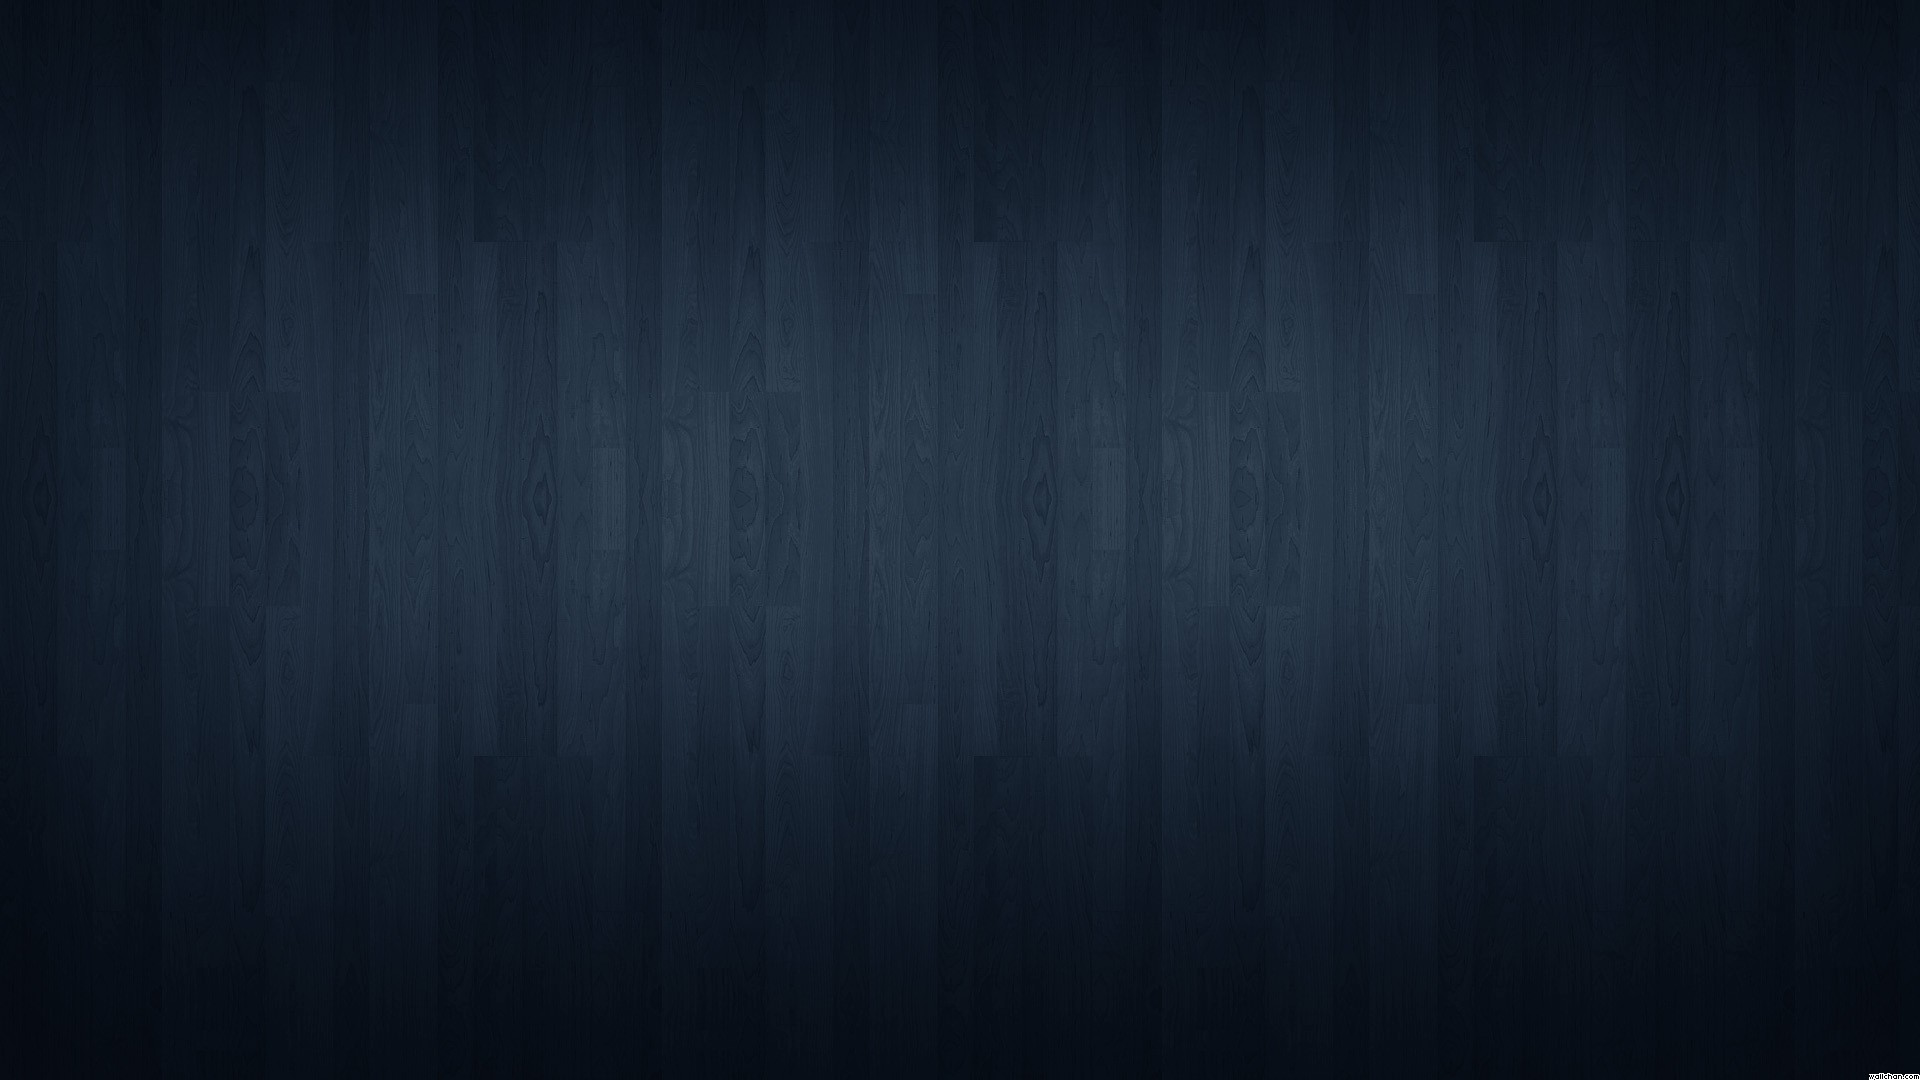 1920x1080 1305828451-floor-minimalistic-dark-pattern-wood-patterns-wallpaper